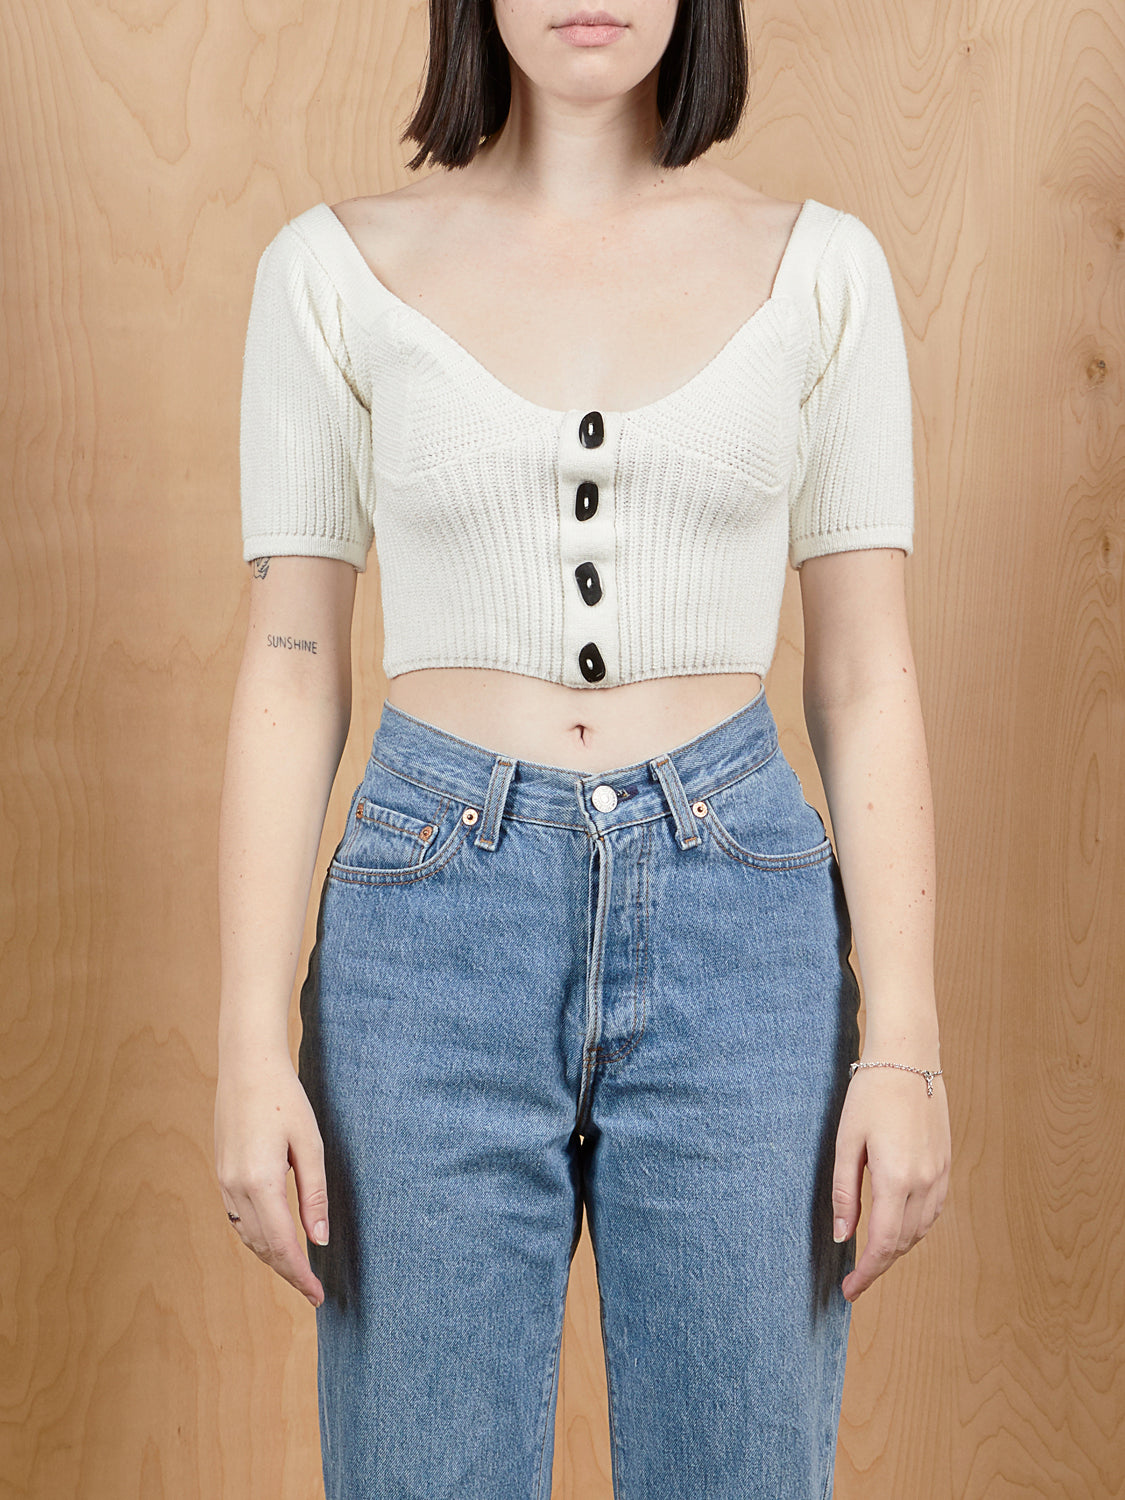 Tach Clothing White Knit Crop Top